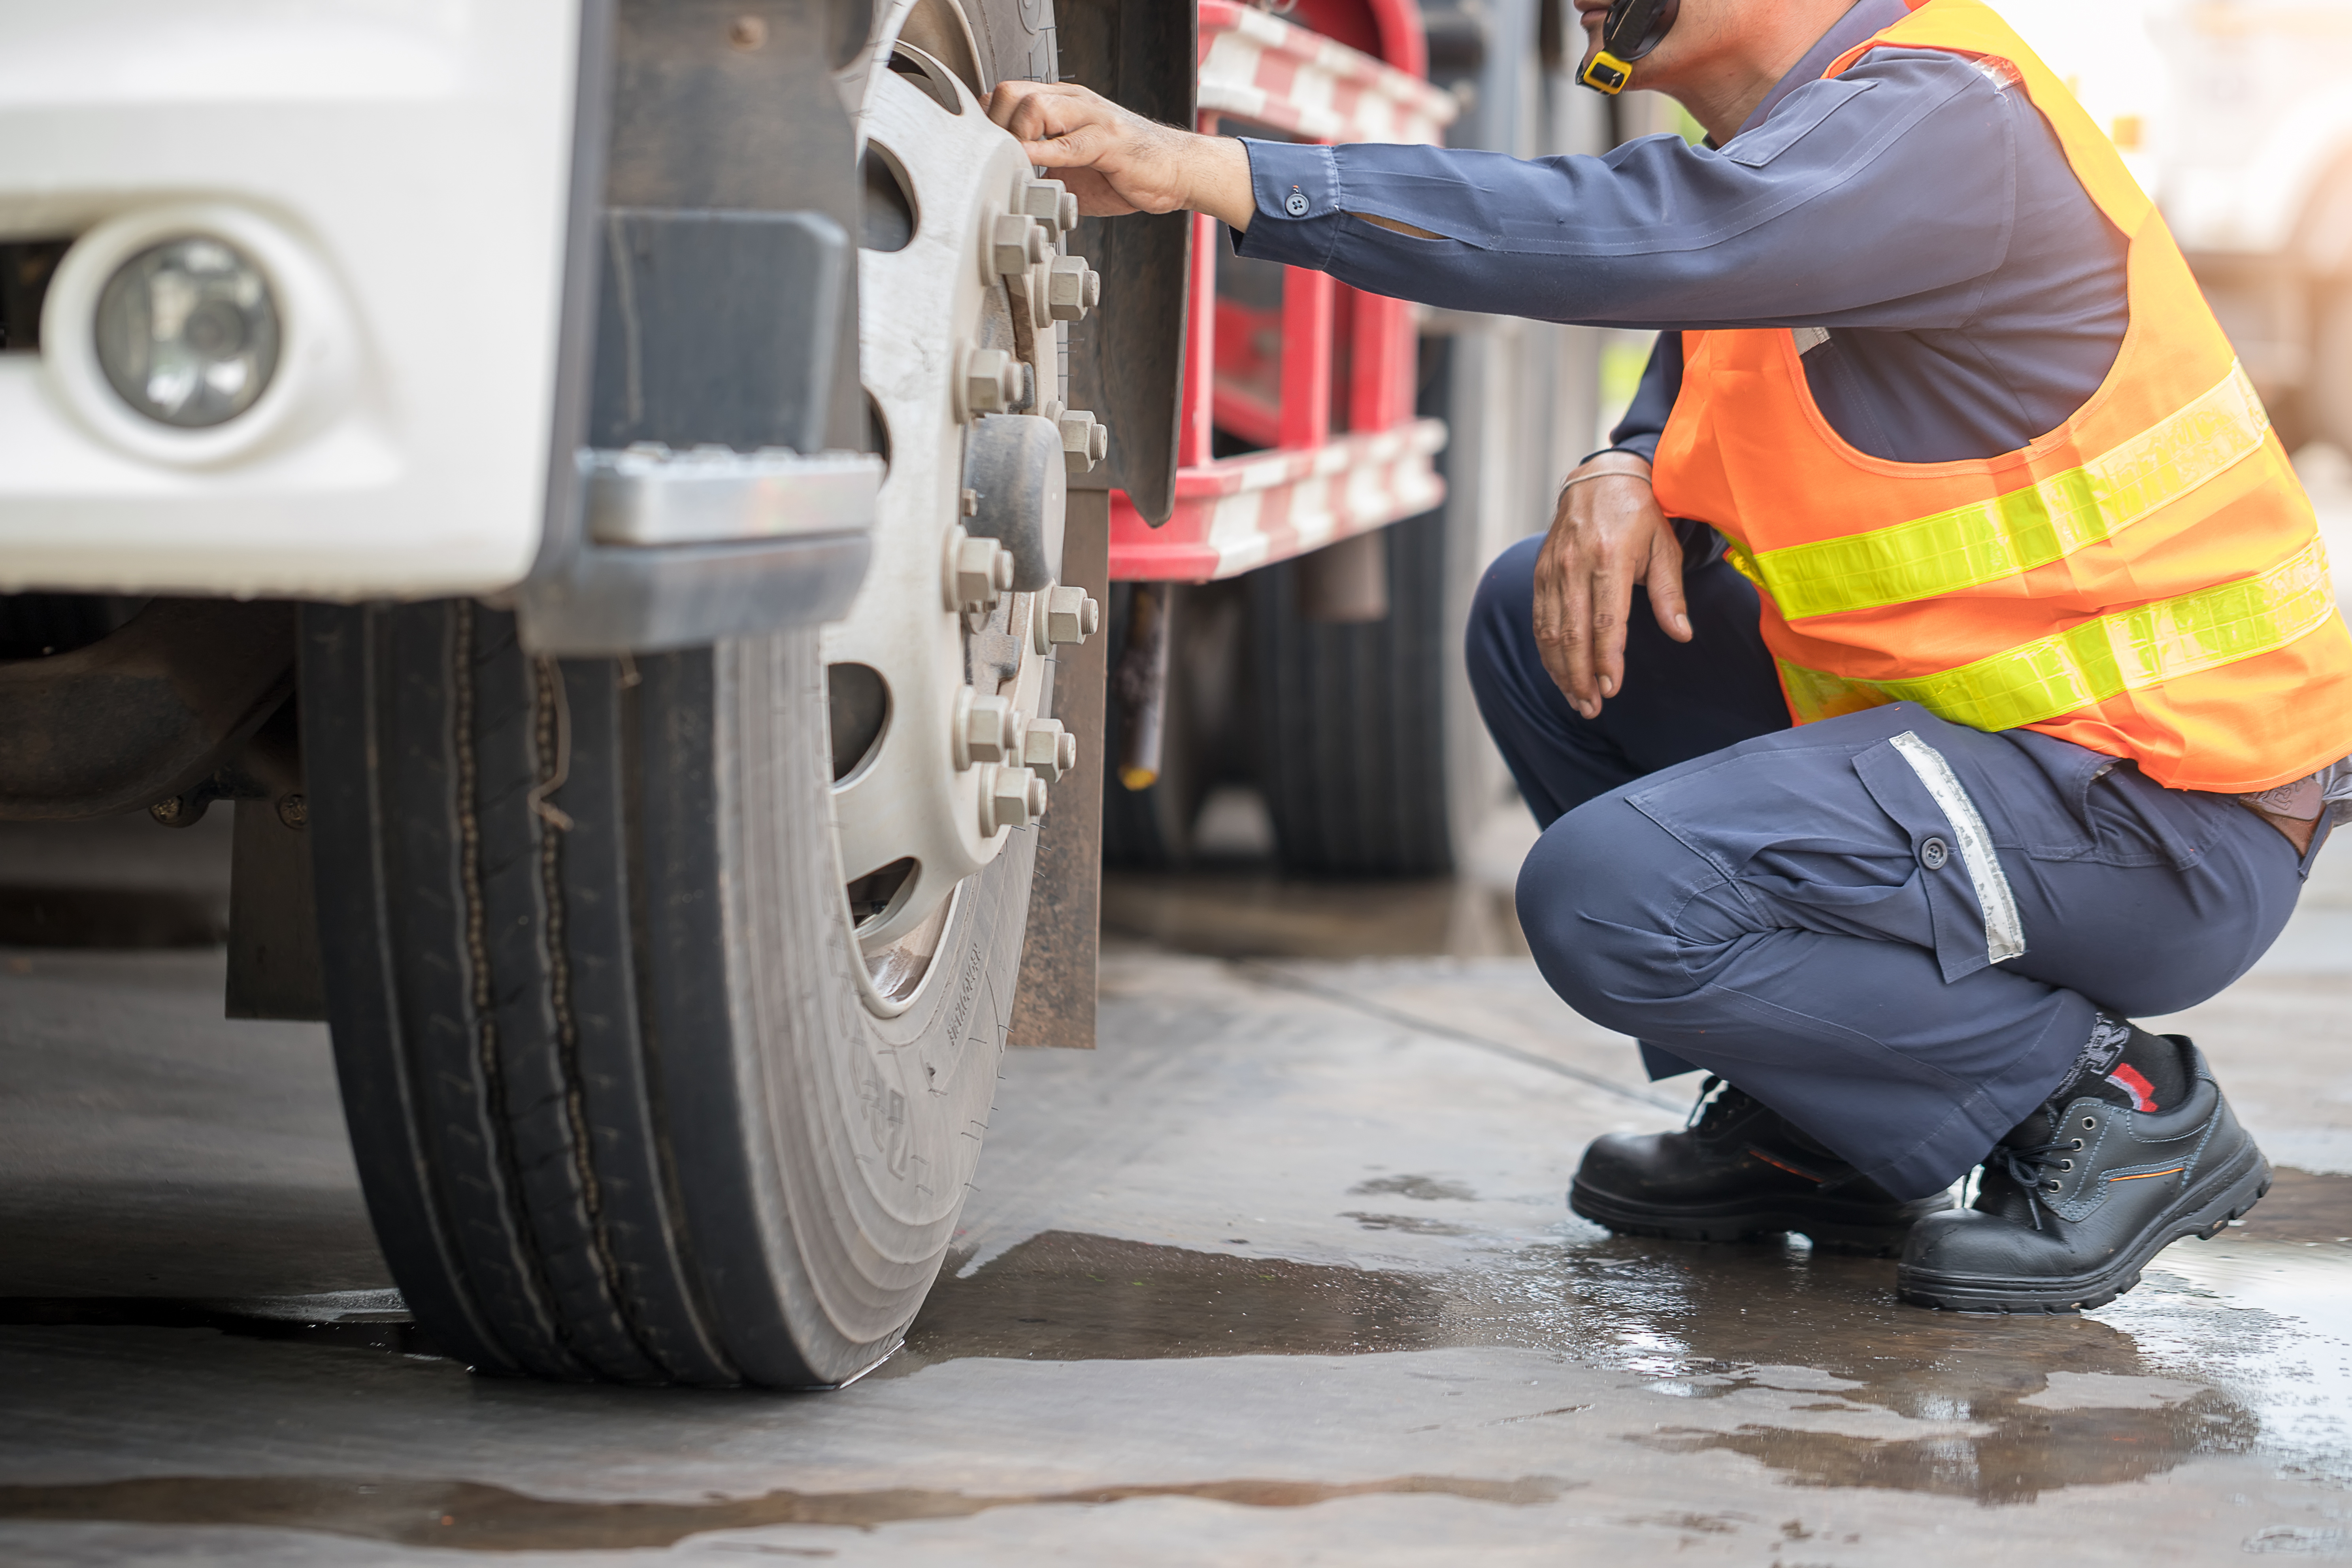 Commerical driver inspecting truck tire during daily vehicle inspection report